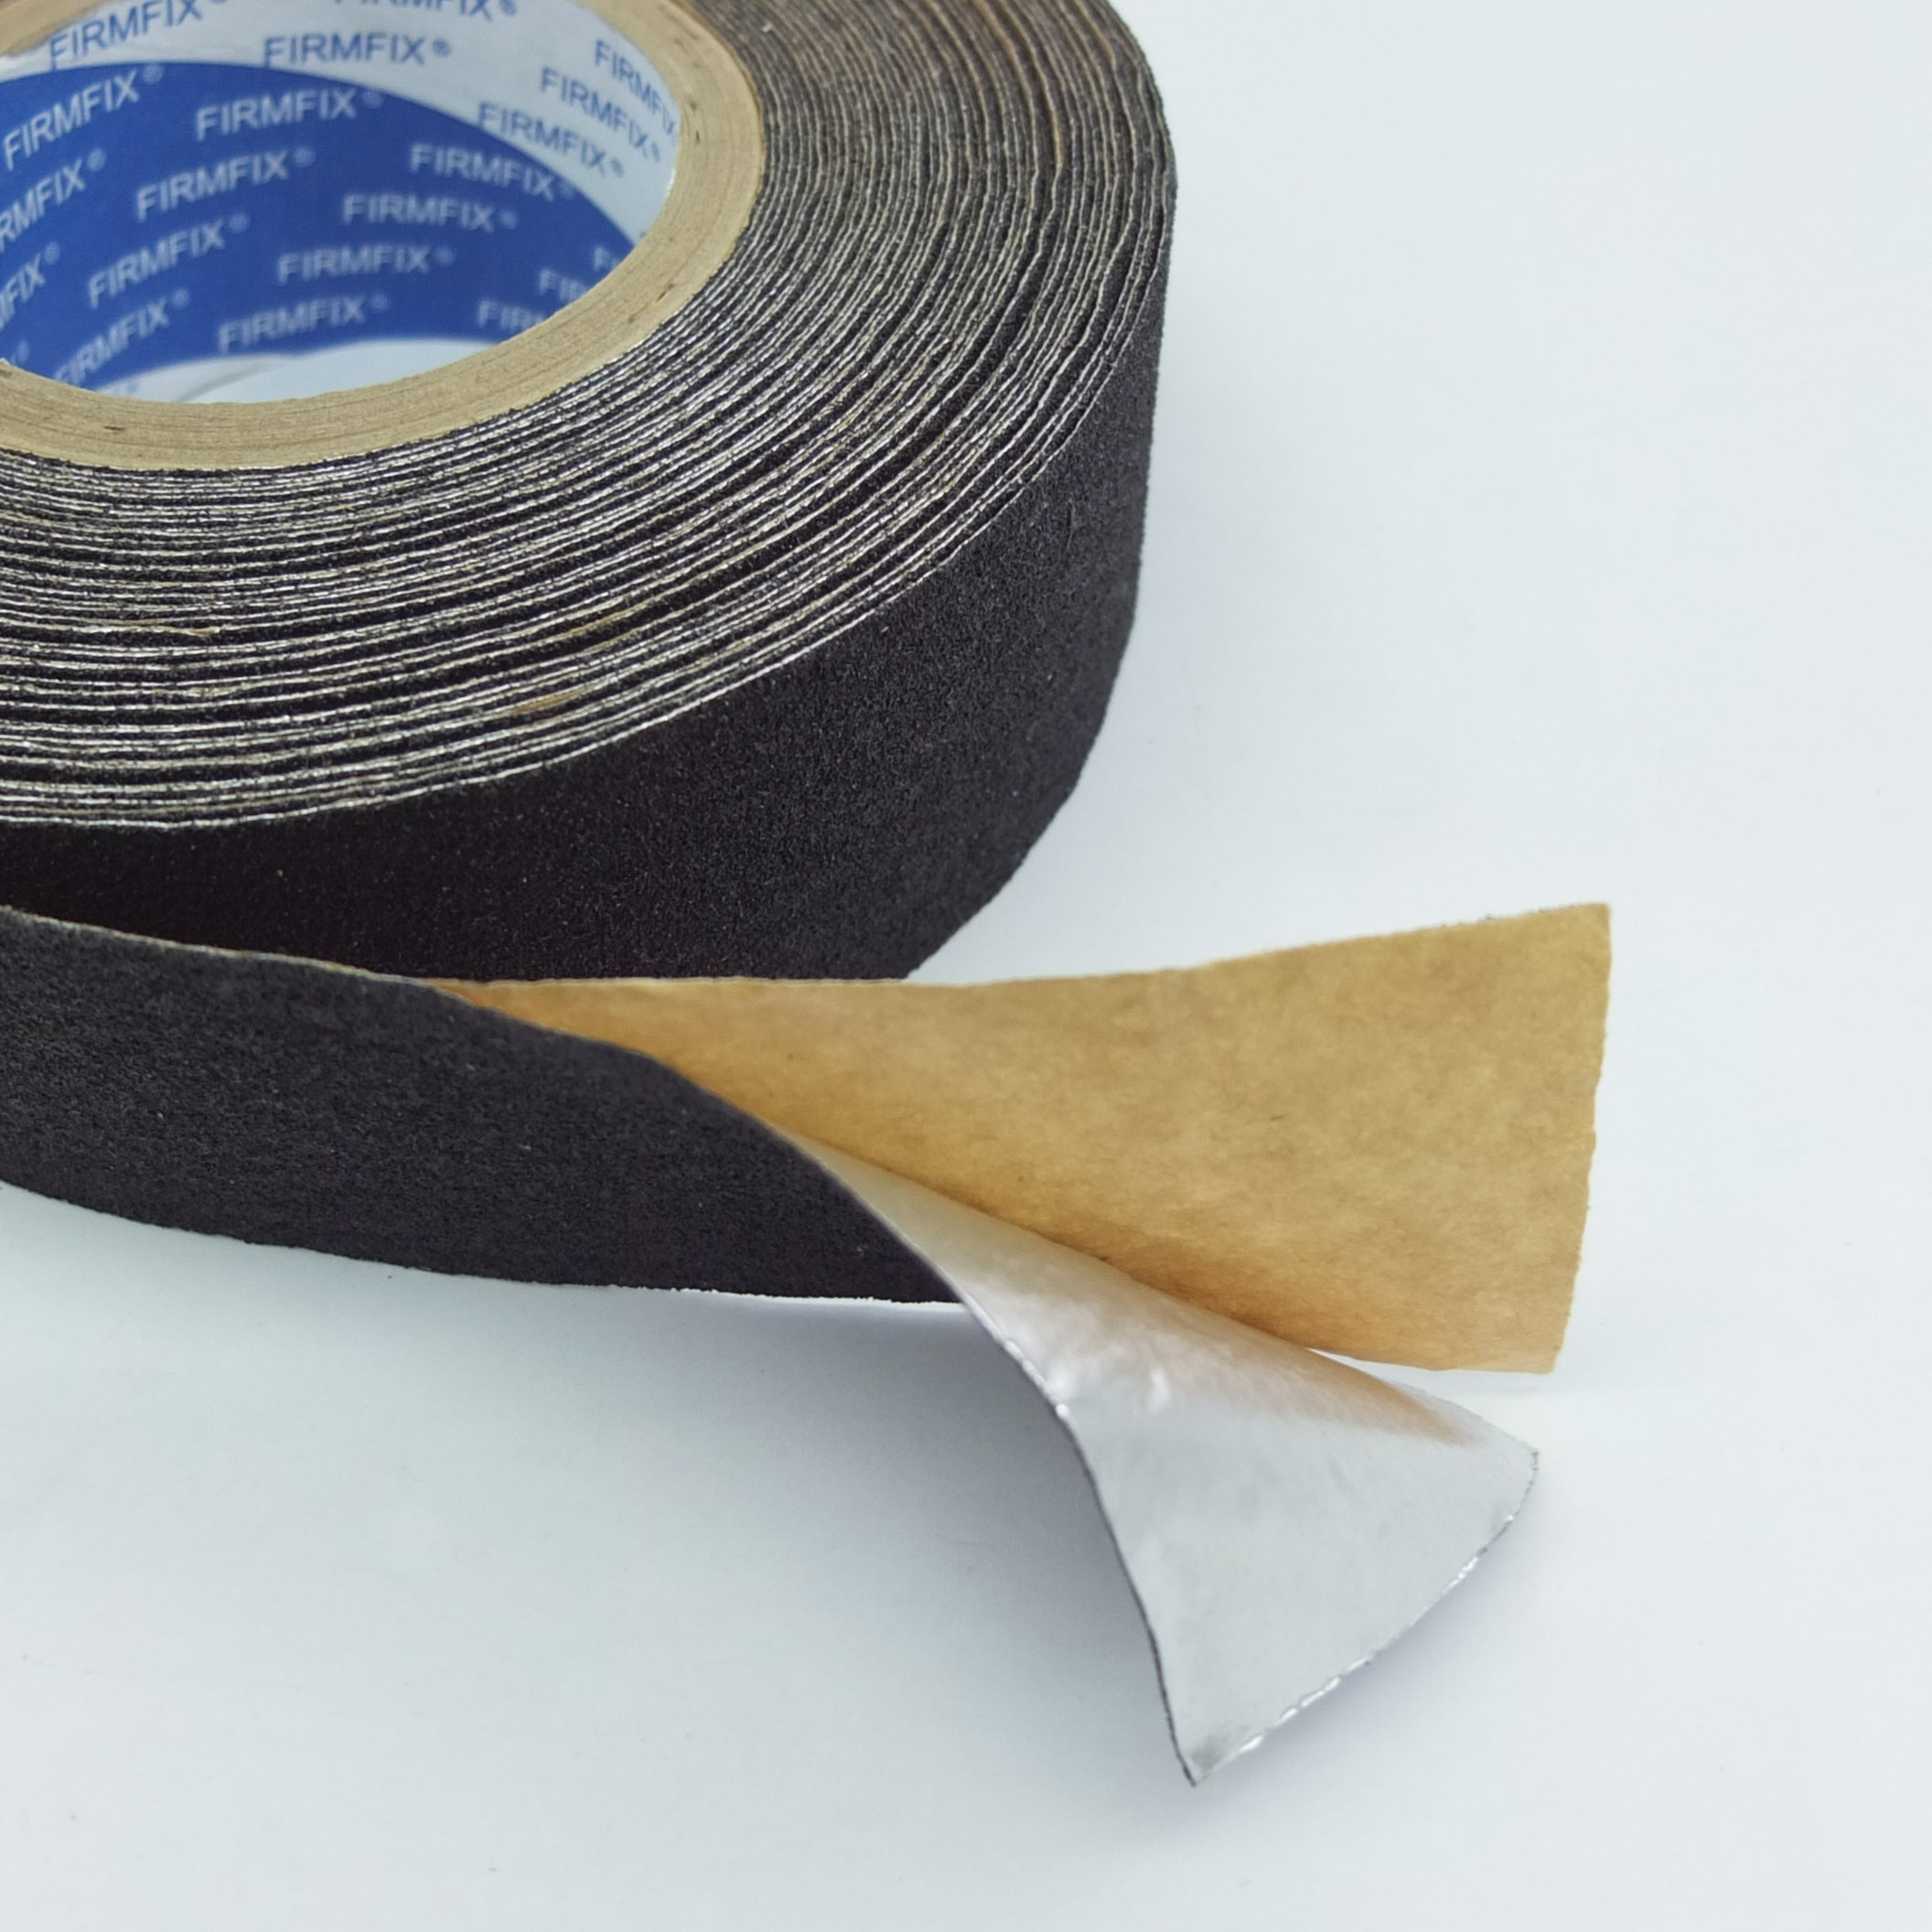 FIRMFIX Anti-slip Tape – Black with Aluminium Backing (Conformable)